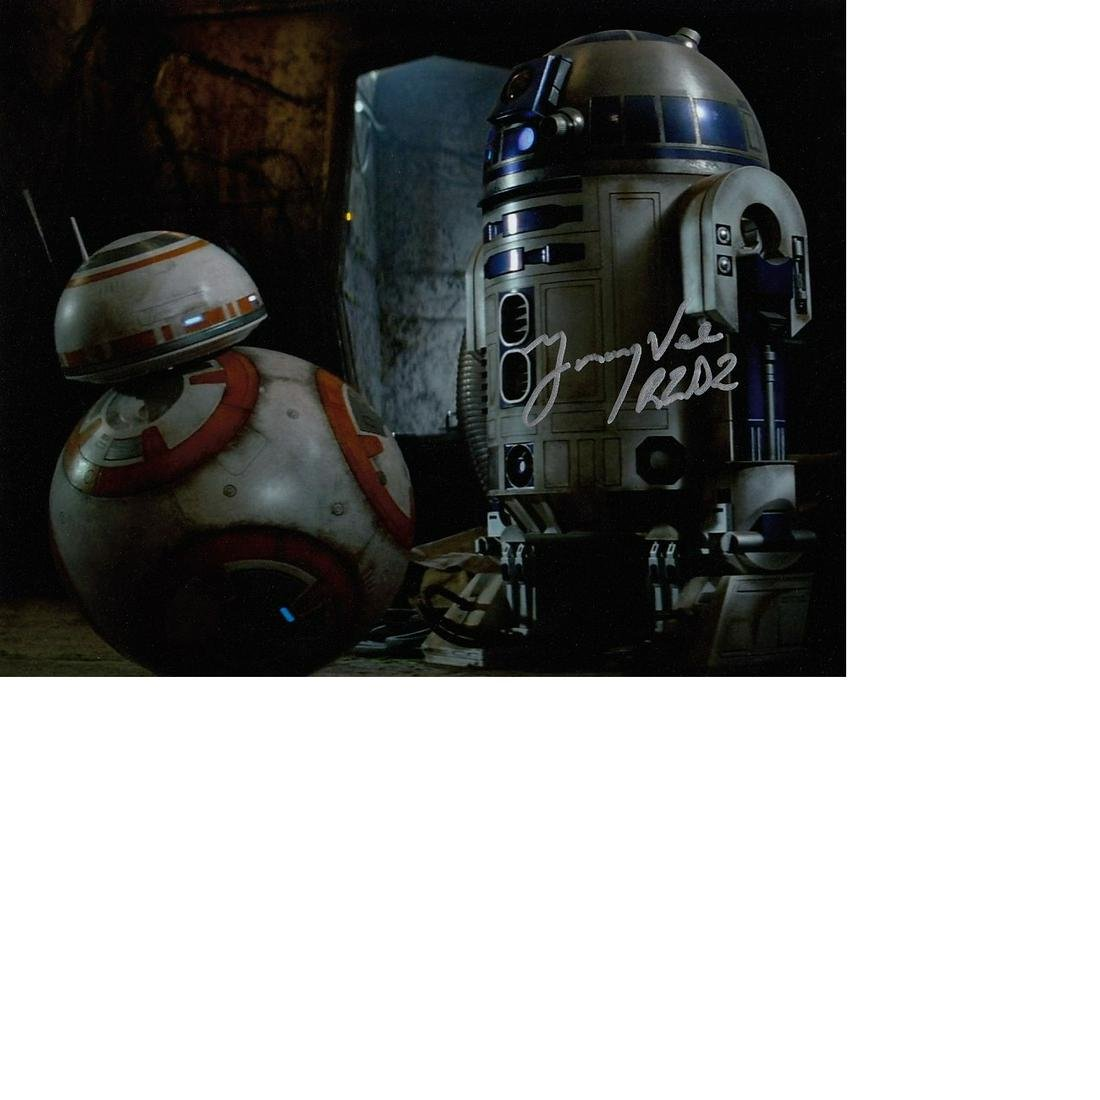 Jimmy Vee R2D2 Star Wars hand signed 10x8 photo. This